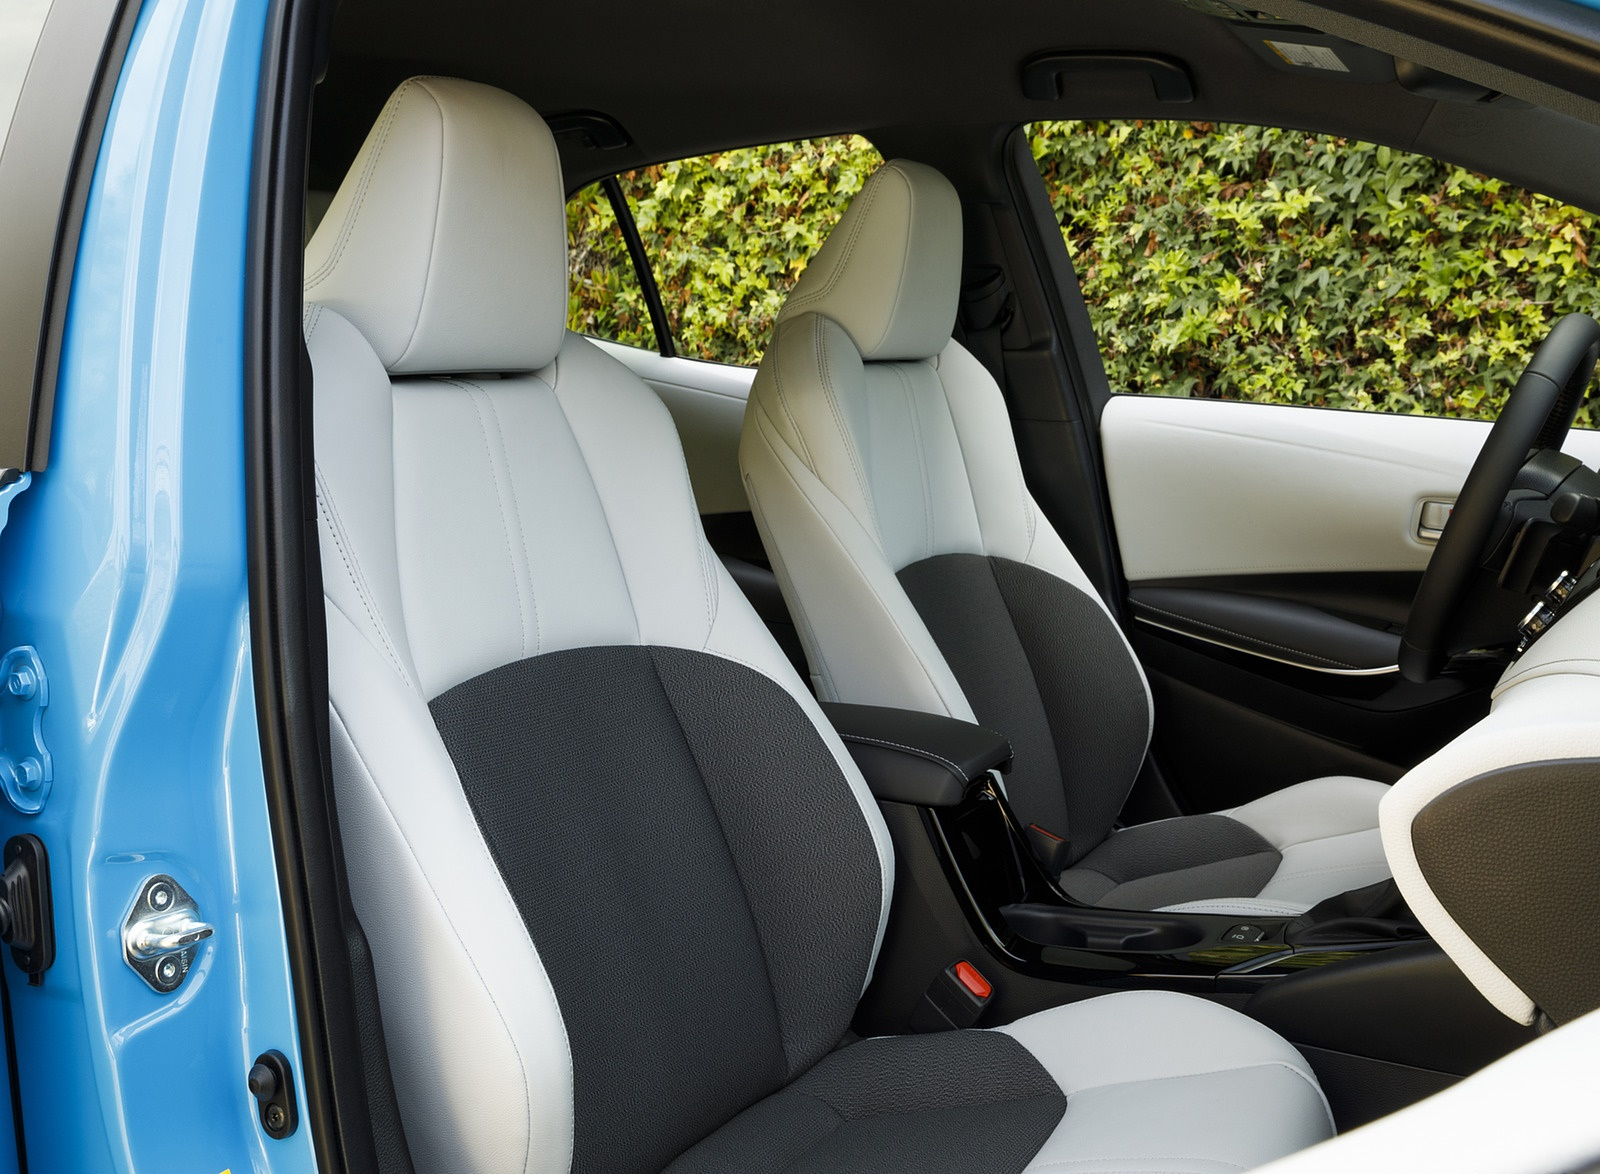 2019 Toyota Corolla Hatchback Interior Seats Wallpapers #42 of 75